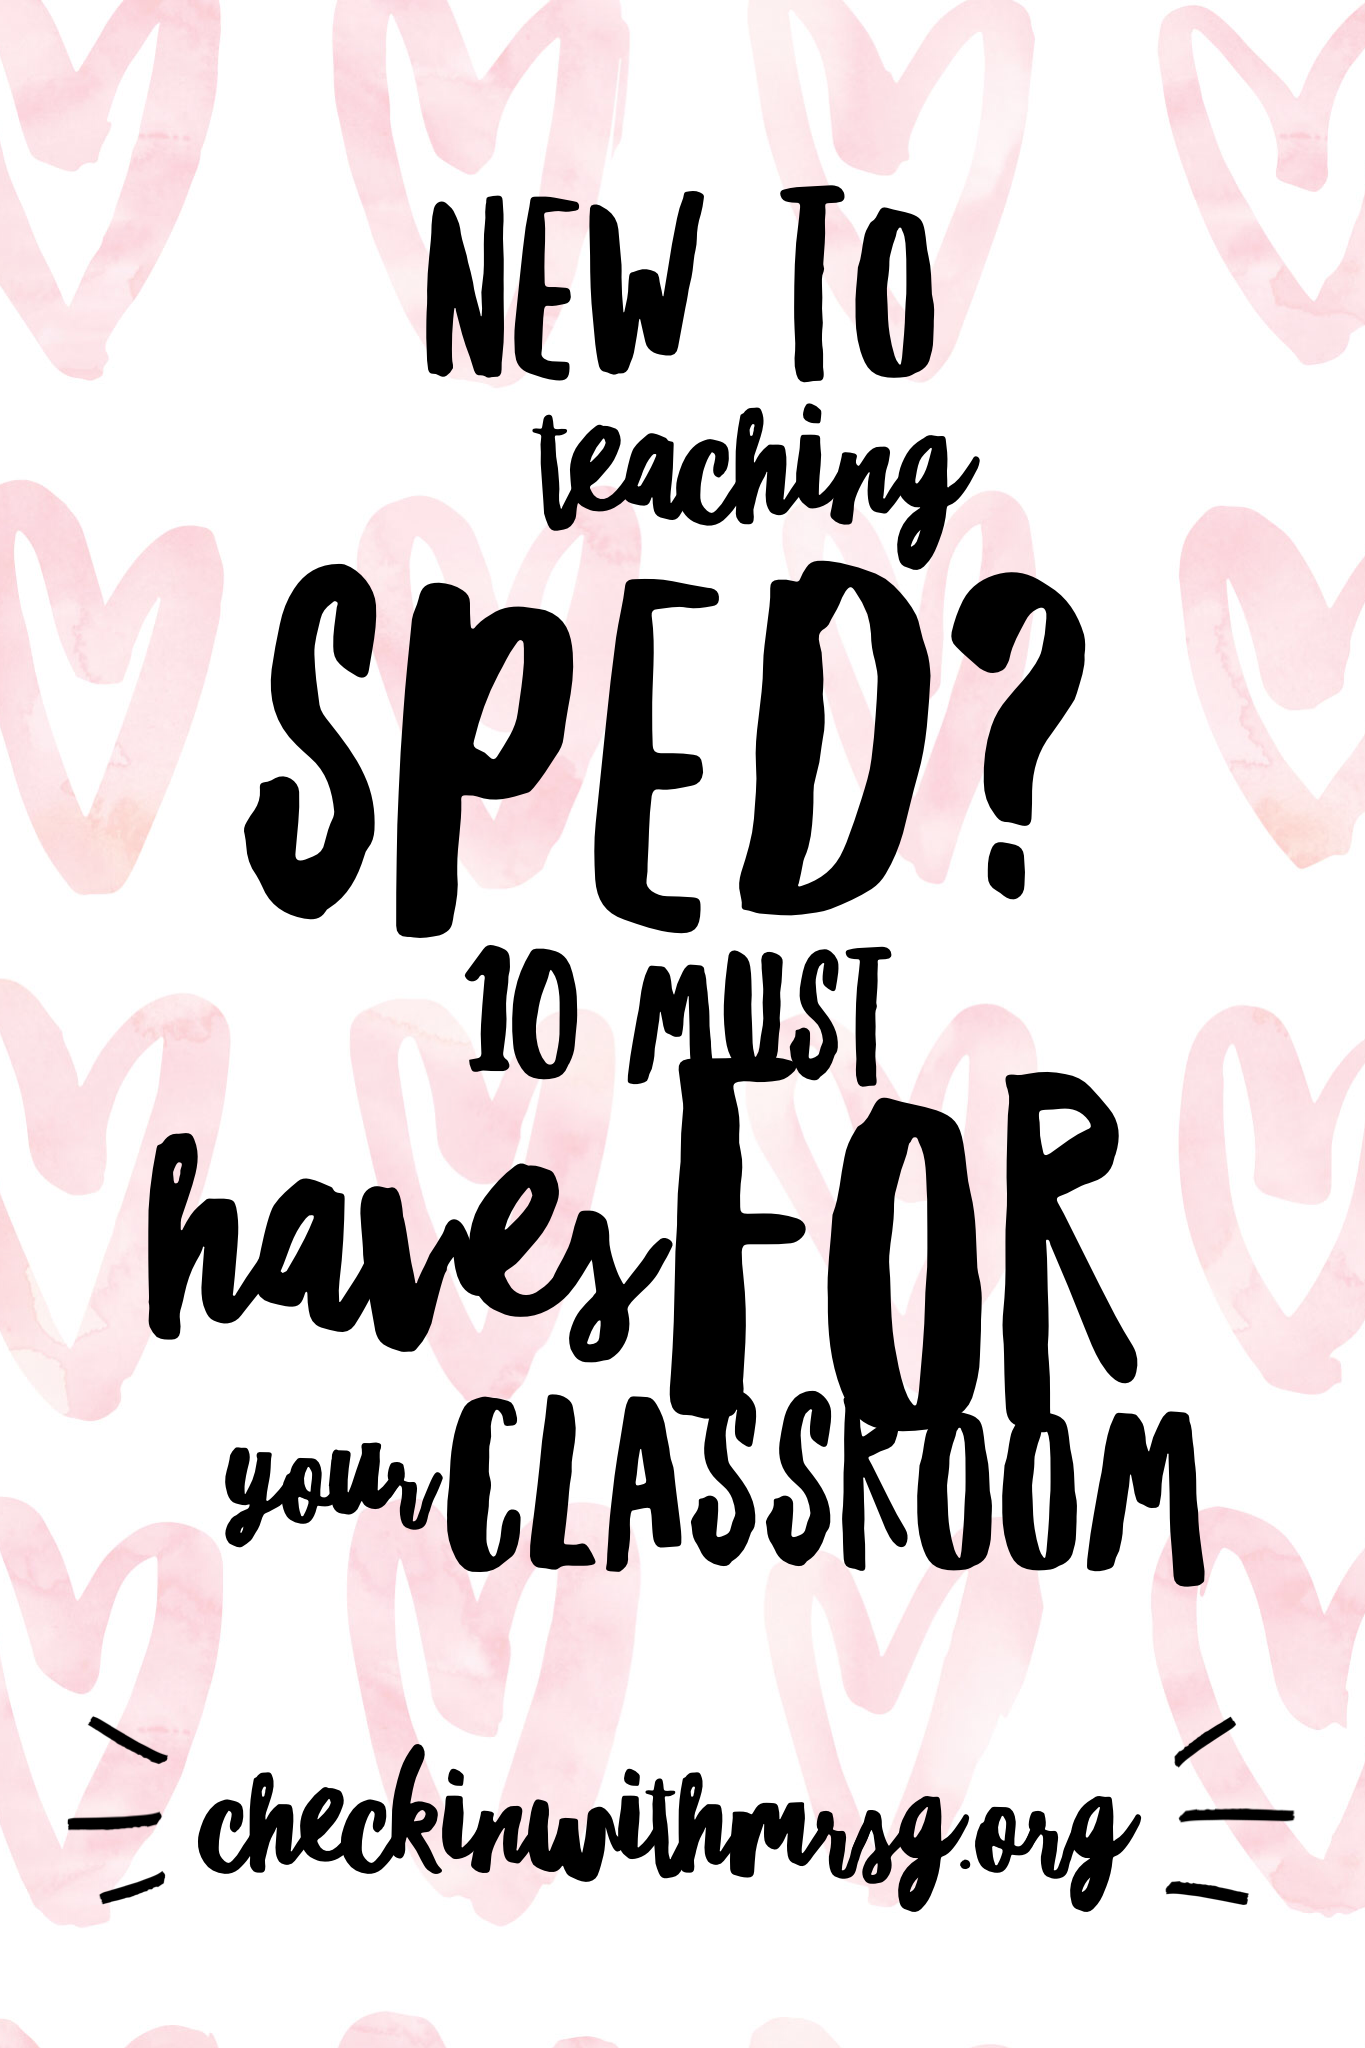 Special education classroom setup A supply list of 10 must have products for teaching sped and suggestions on how to use them